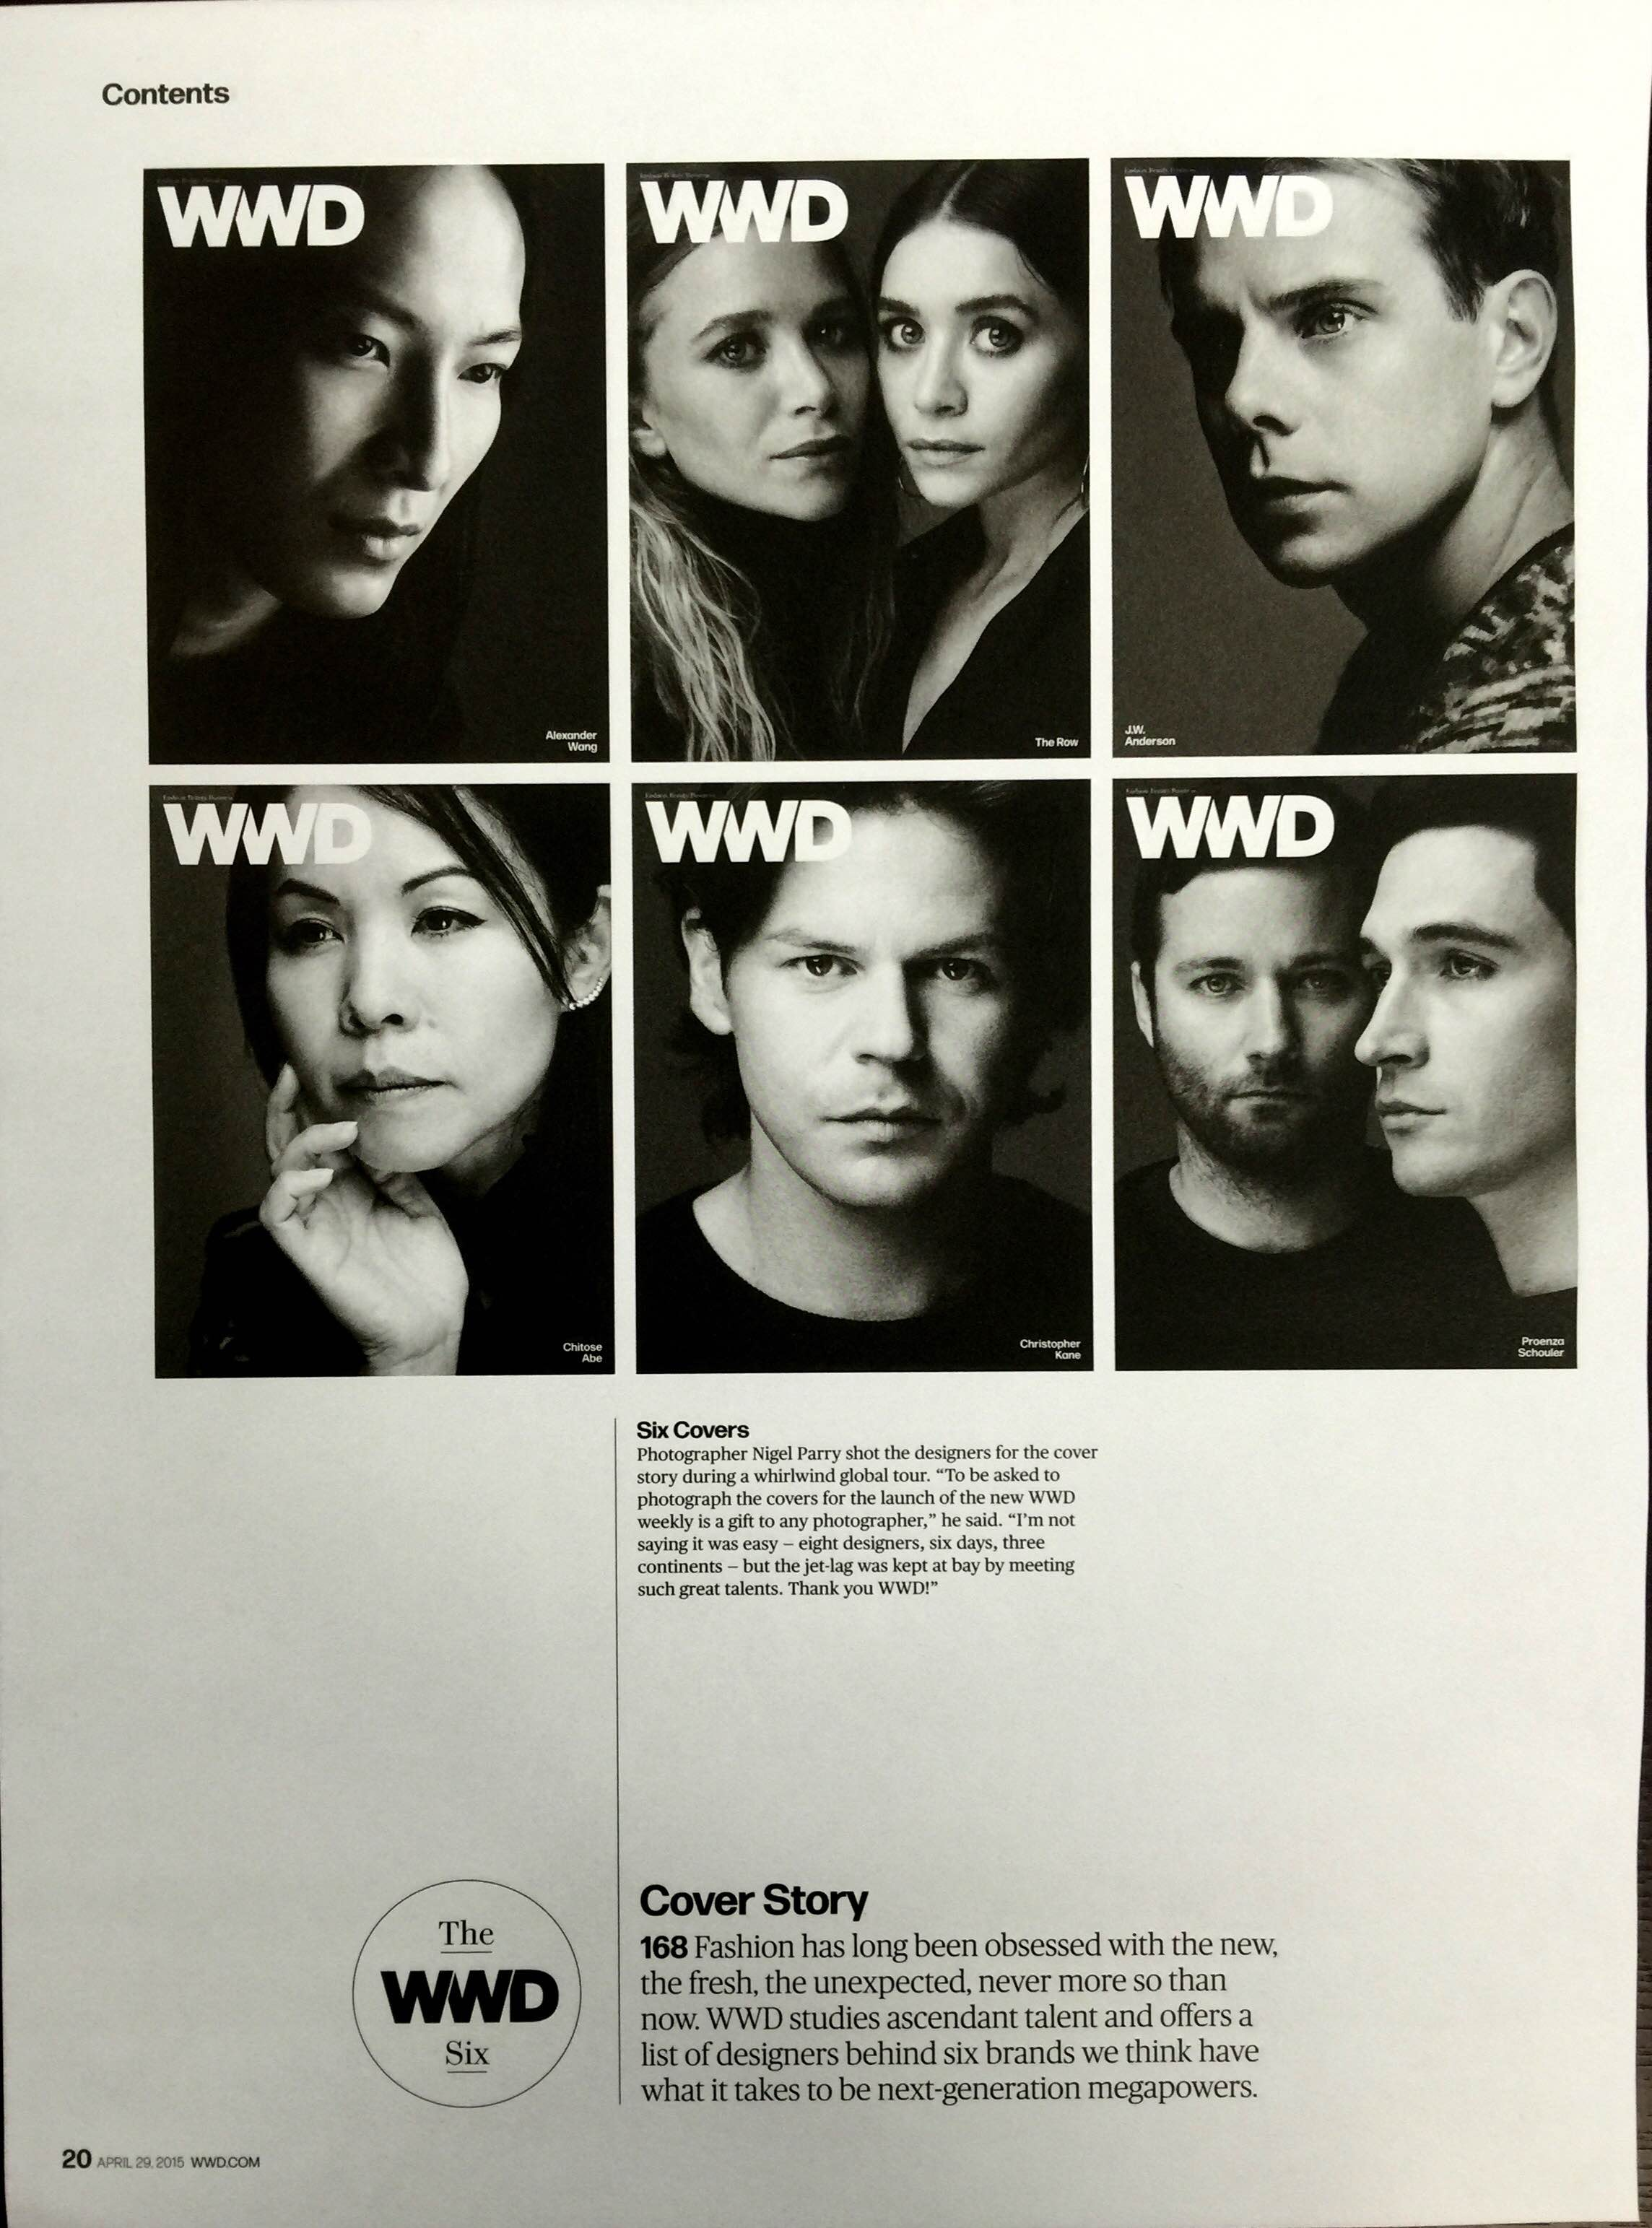 The inspiration for this week's team portraits came from an issue of Women's Wear Daily, beautifully shot in black and white by celebrity photographer  Nigel Parry .